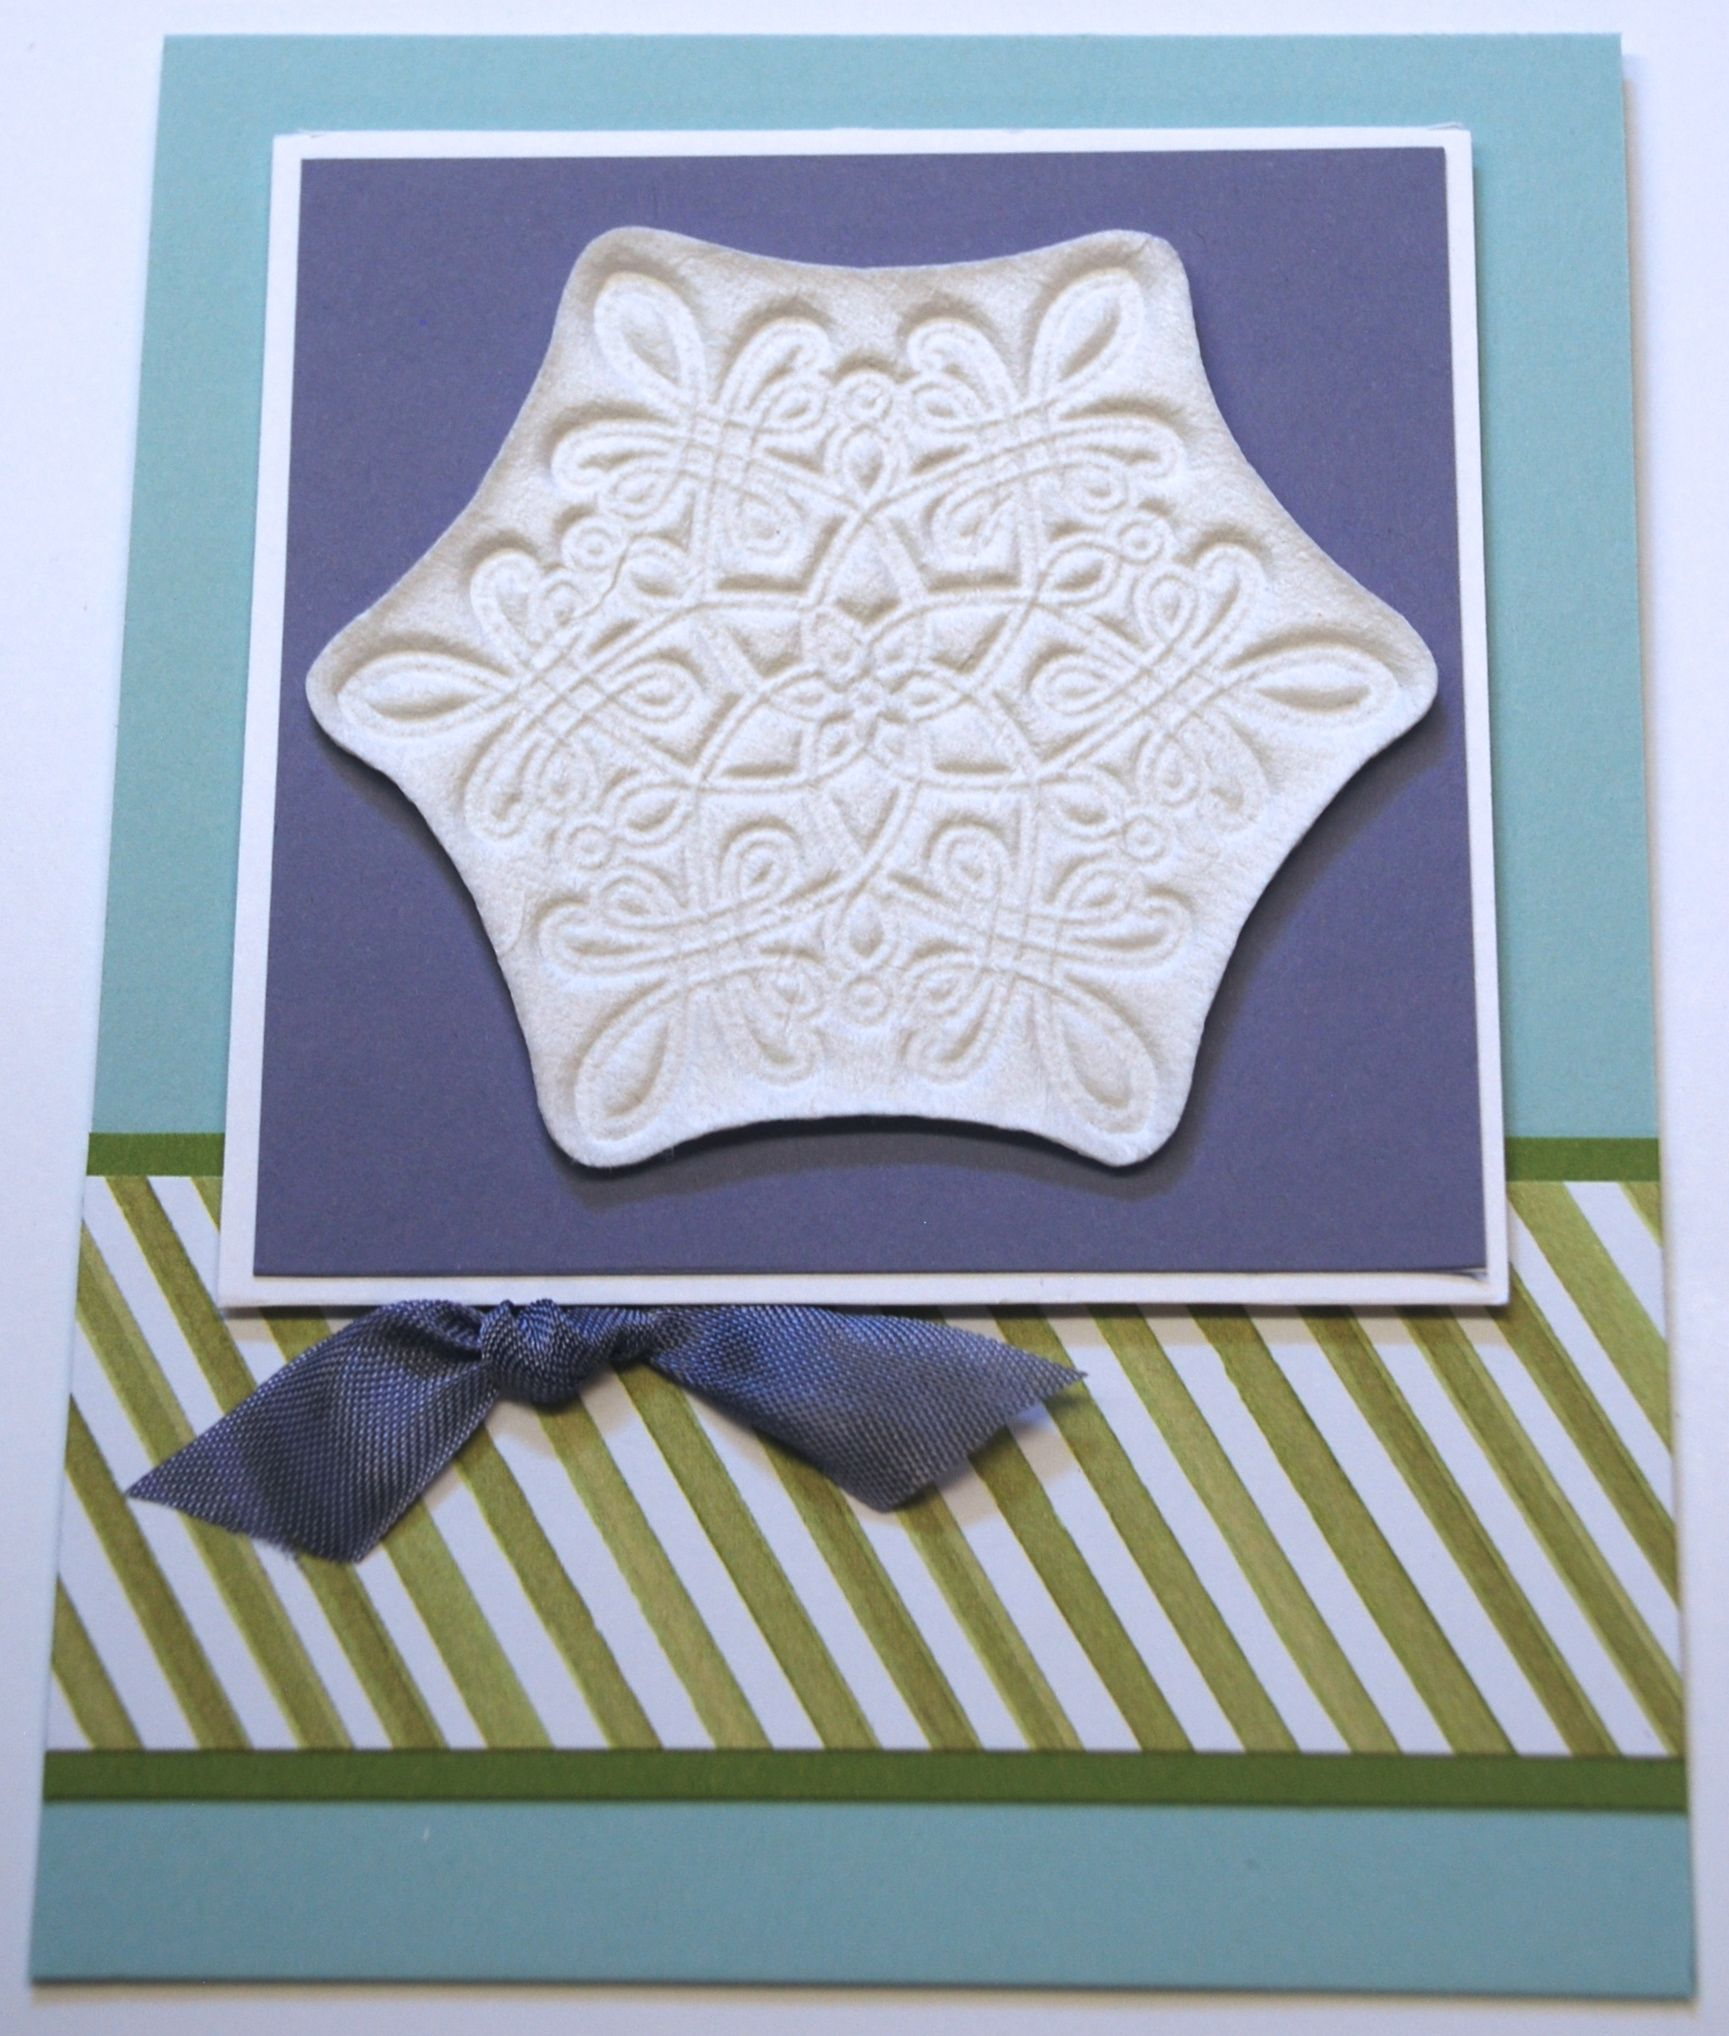 Sept 2015 Technique Class - I Found It Around My House - Toilet Paper Casting - Flurry of Wishes Photopolymer Stamp Set - Pool Party, Old Olive, Whisper White, Wisteria Wonder card stock and Season of Cheer Designer Series Paper